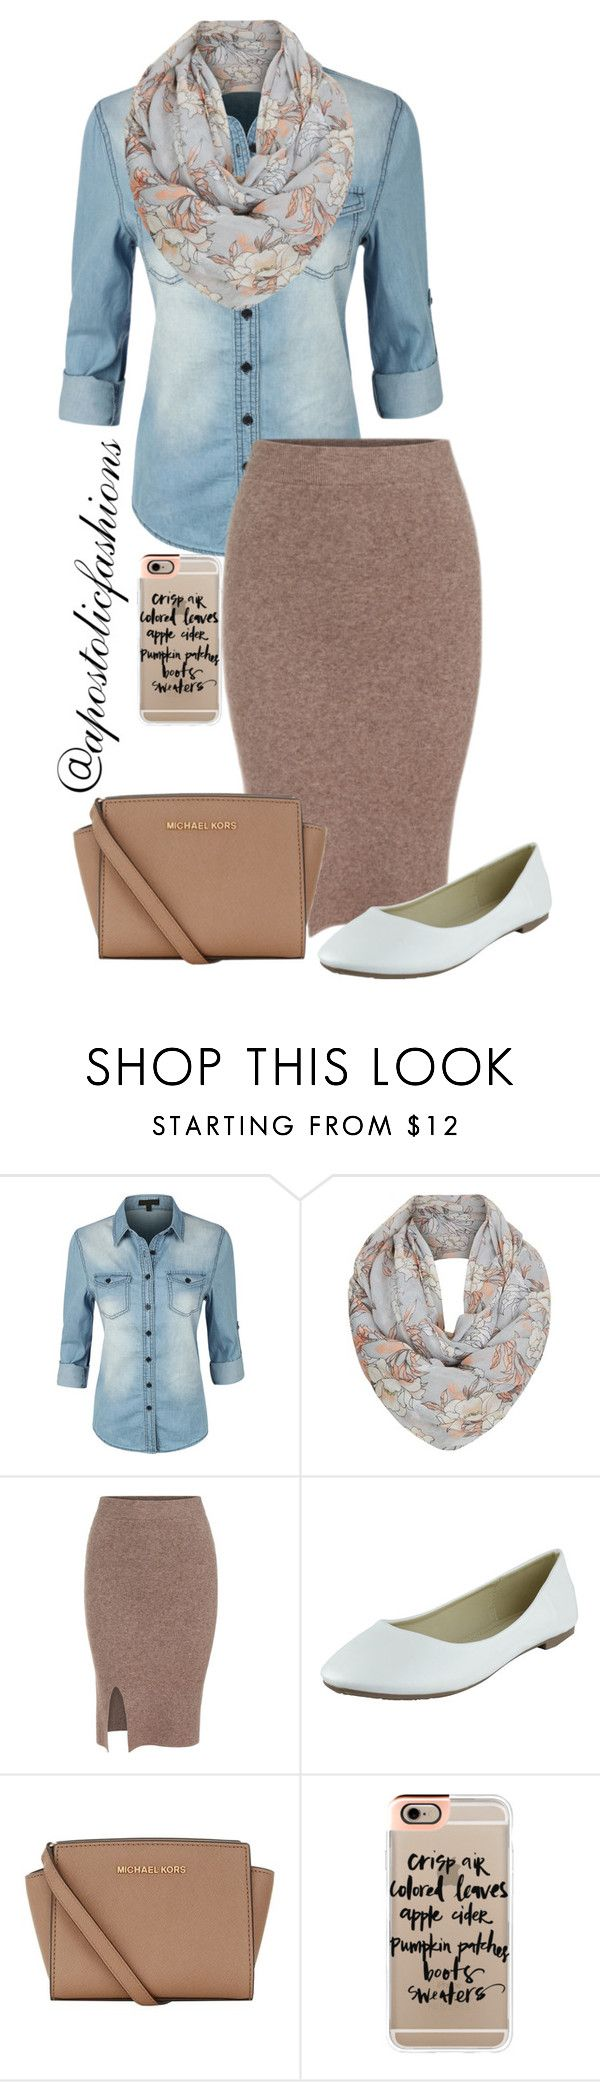 """Apostolic Fashions #902"" by apostolicfashions ❤ liked on Polyvore featuring LE3NO, MICHAEL Michael Kors and Casetify"